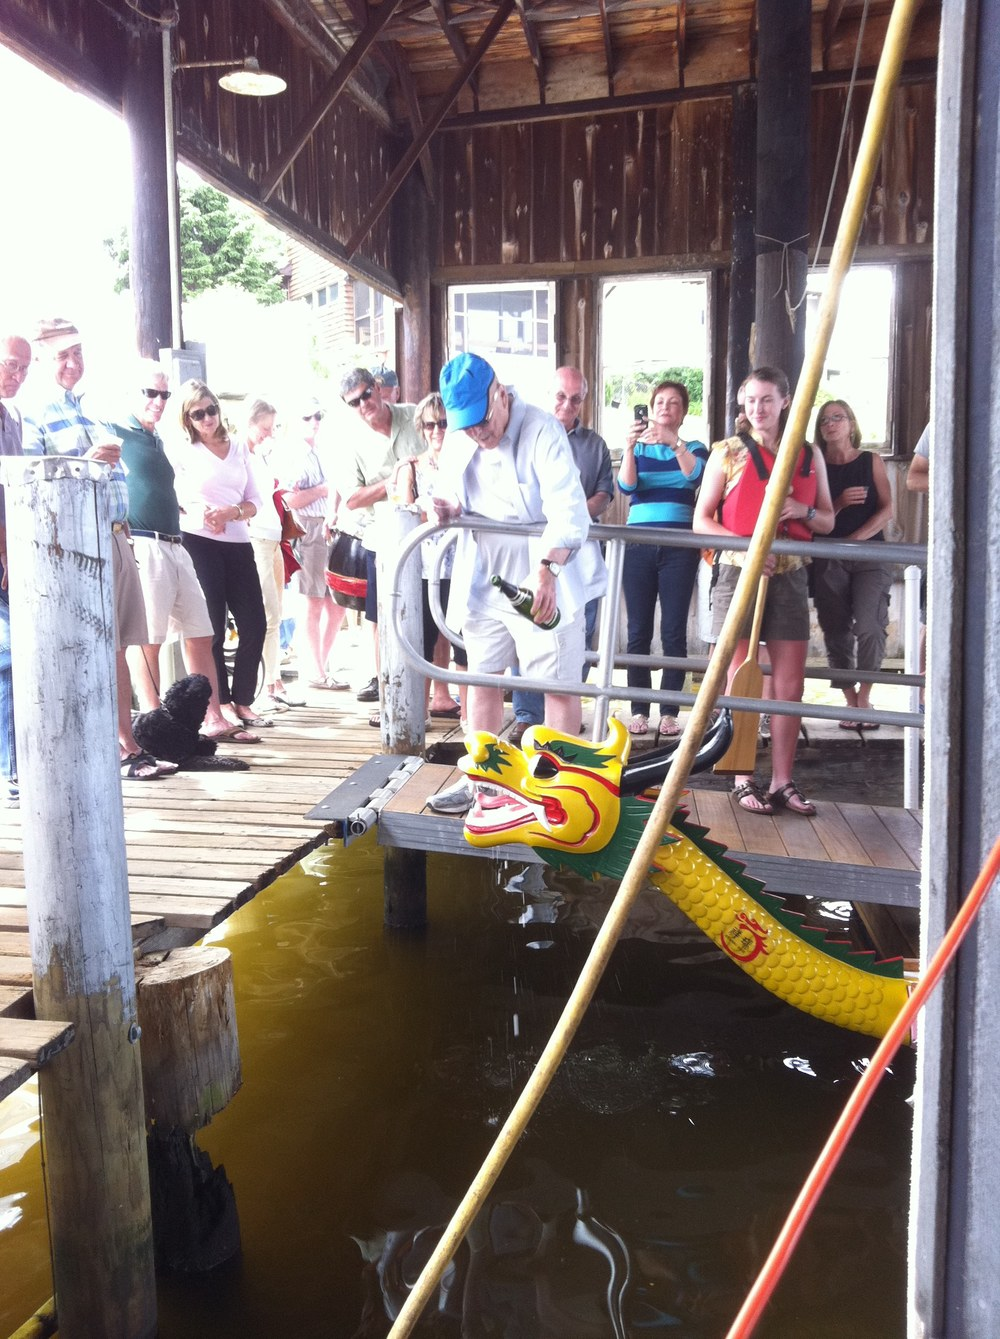 Once in a while boats lend themselves to worthy causes like the Annapolis Dragonboat Cluband you go for the christening. 5/20/12